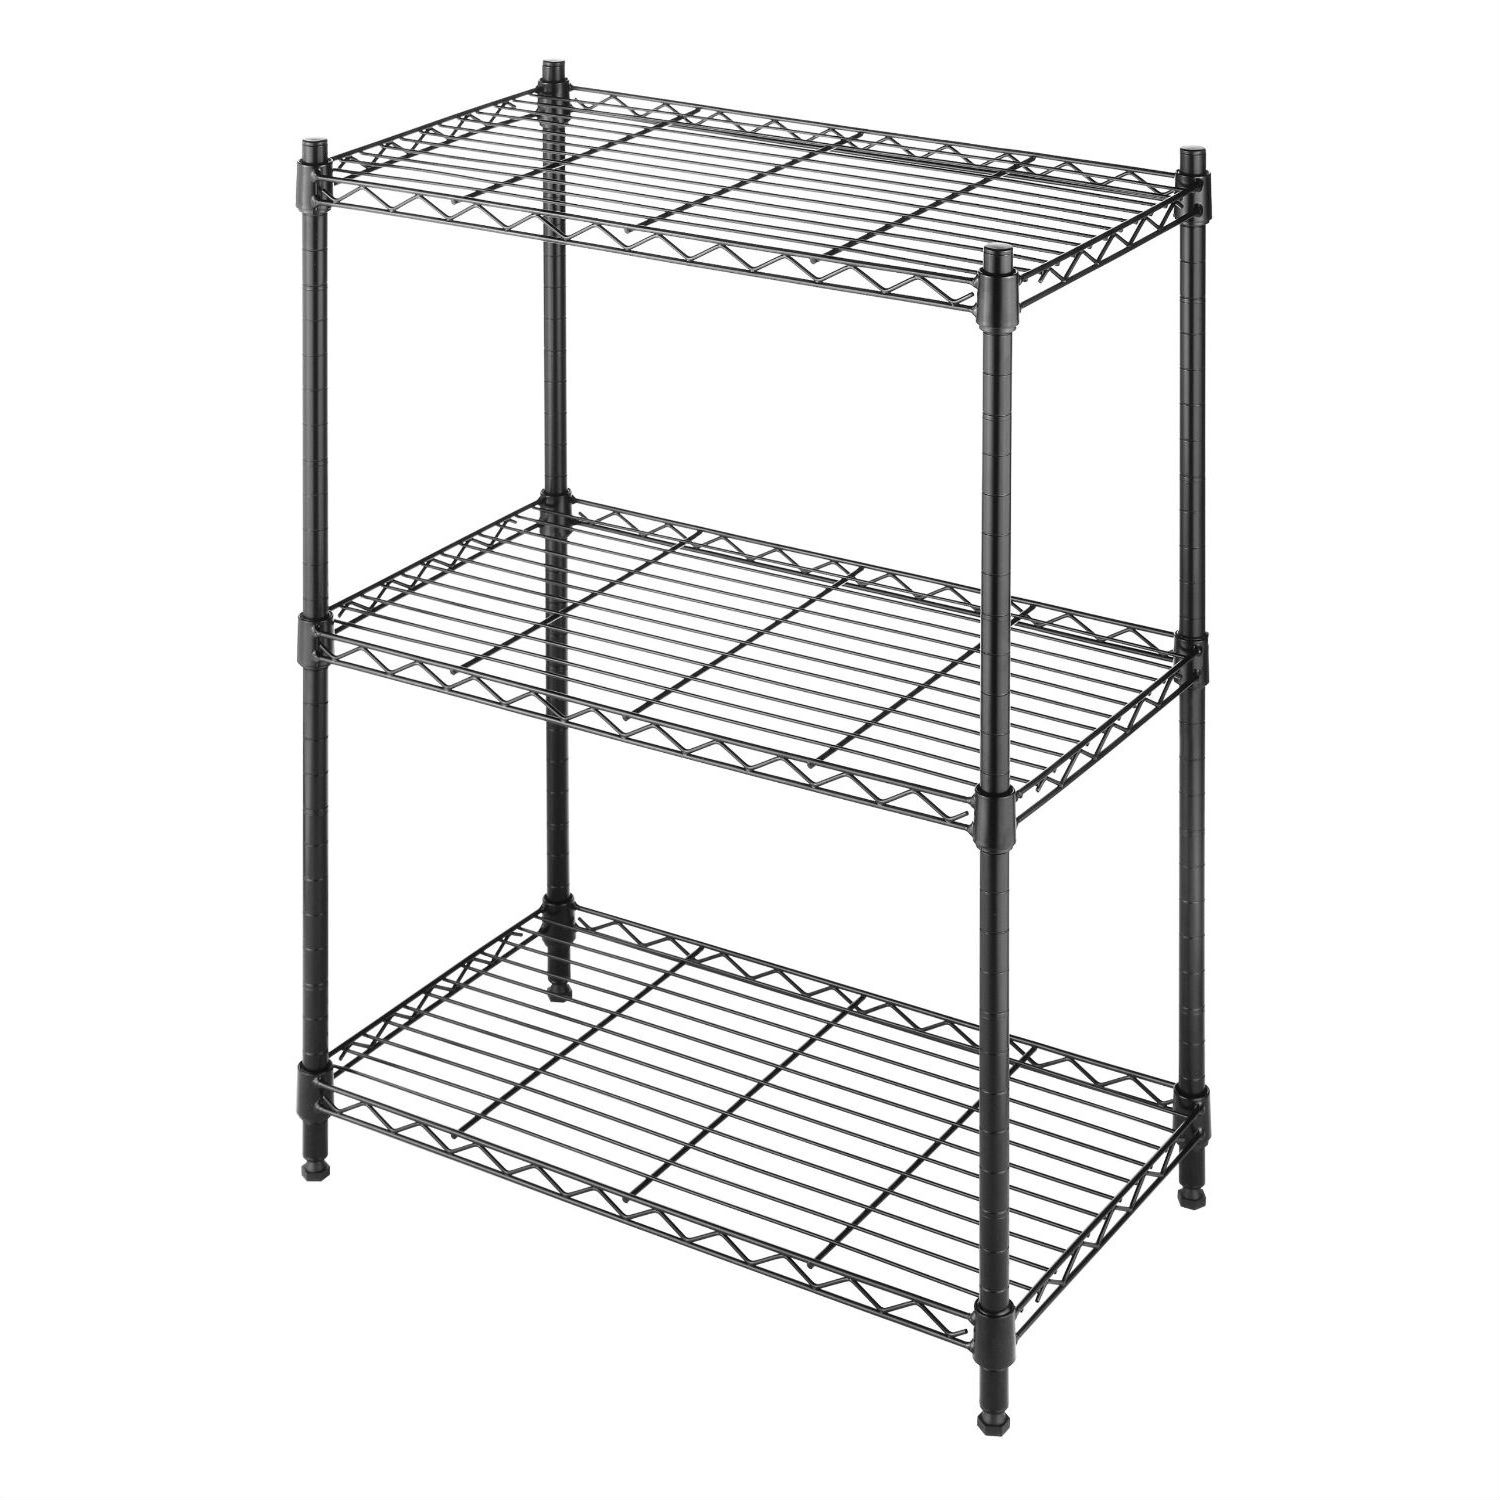 Storage Racks Small 3 Shelf Storage Rack Shelving Unit In Black Metal With Adjustable Leveling Feet